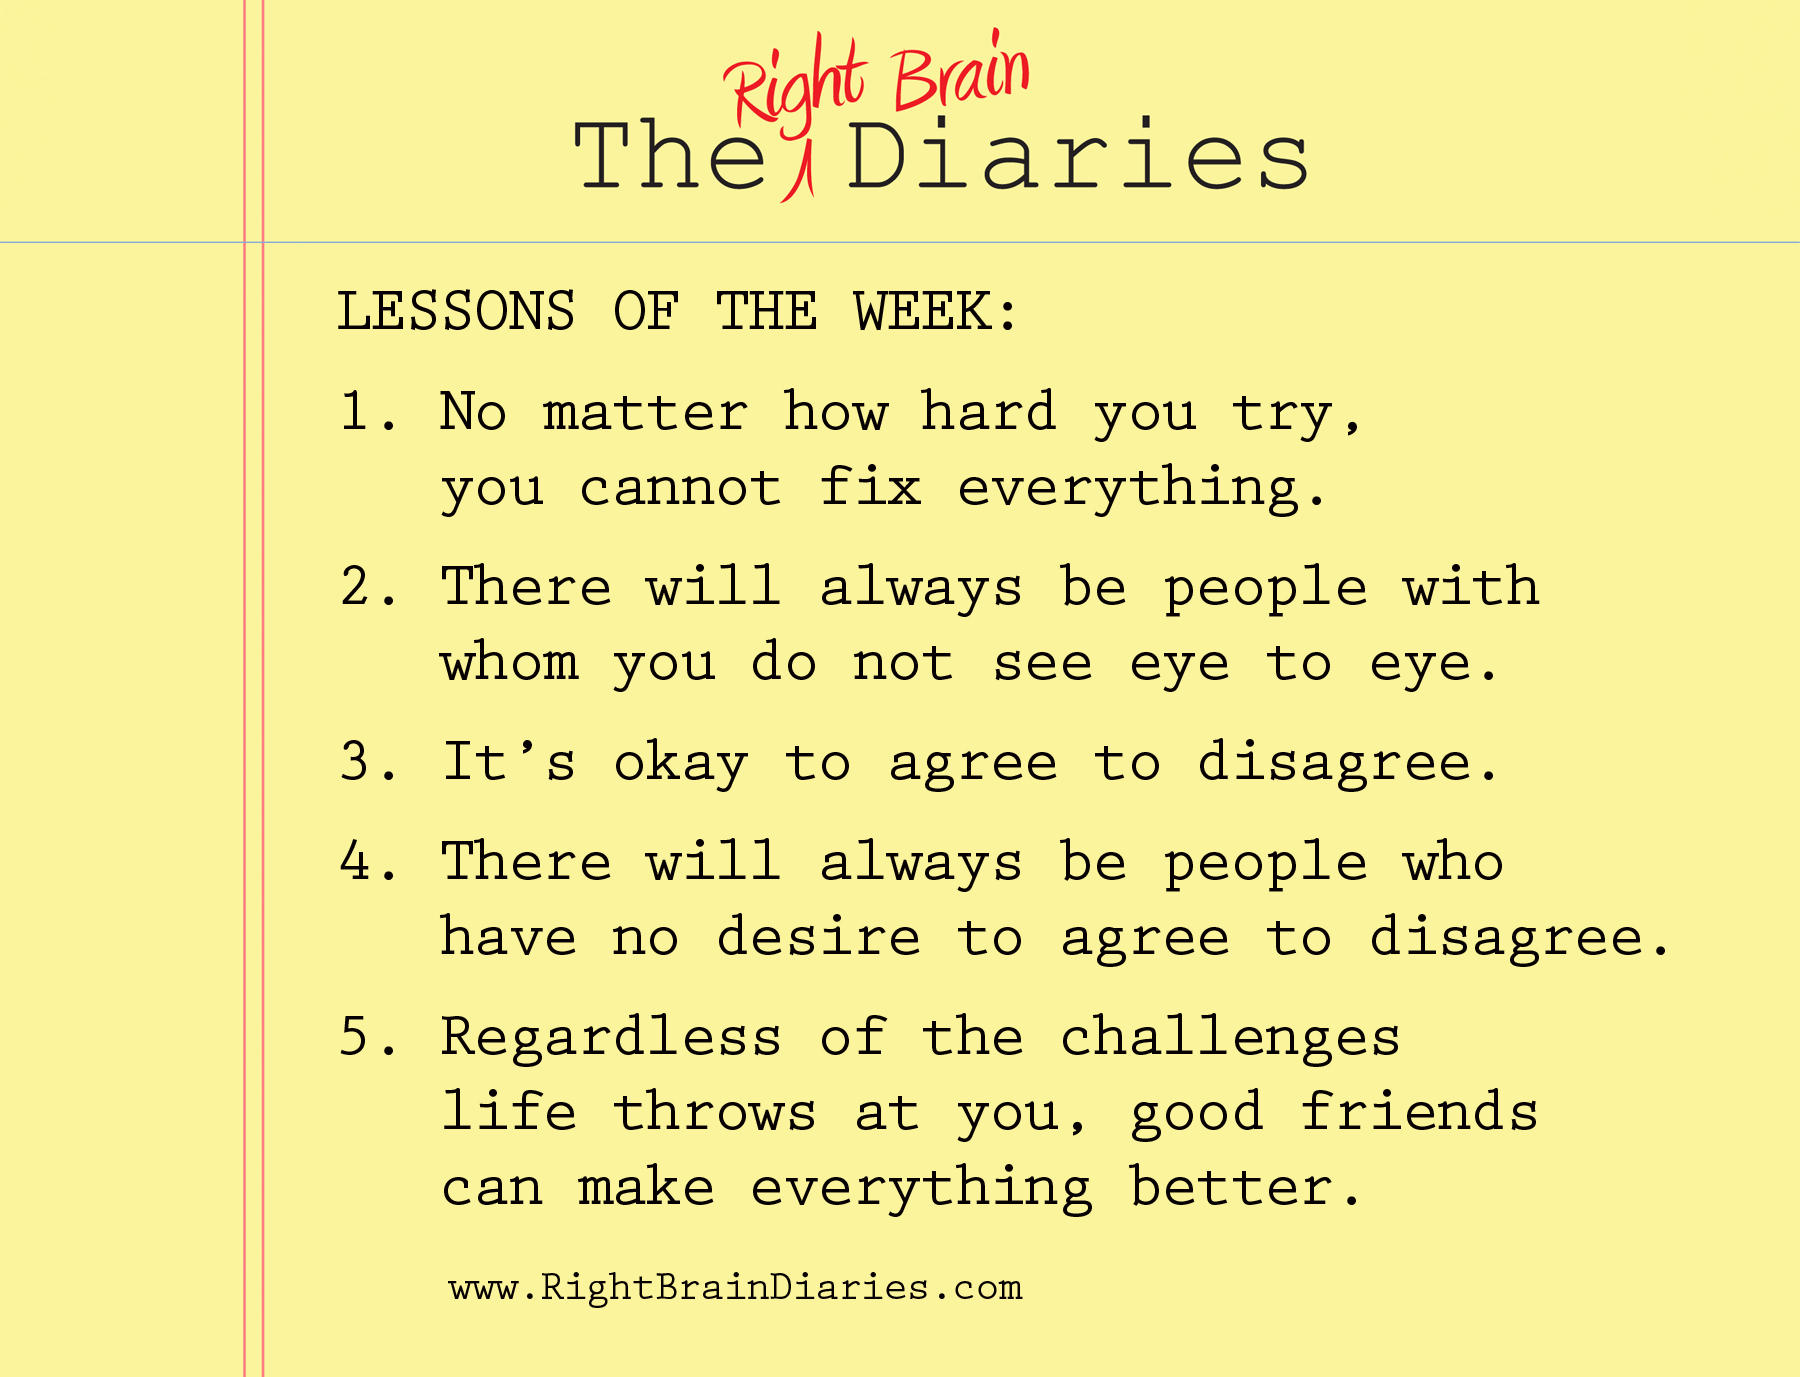 Lessons of the week